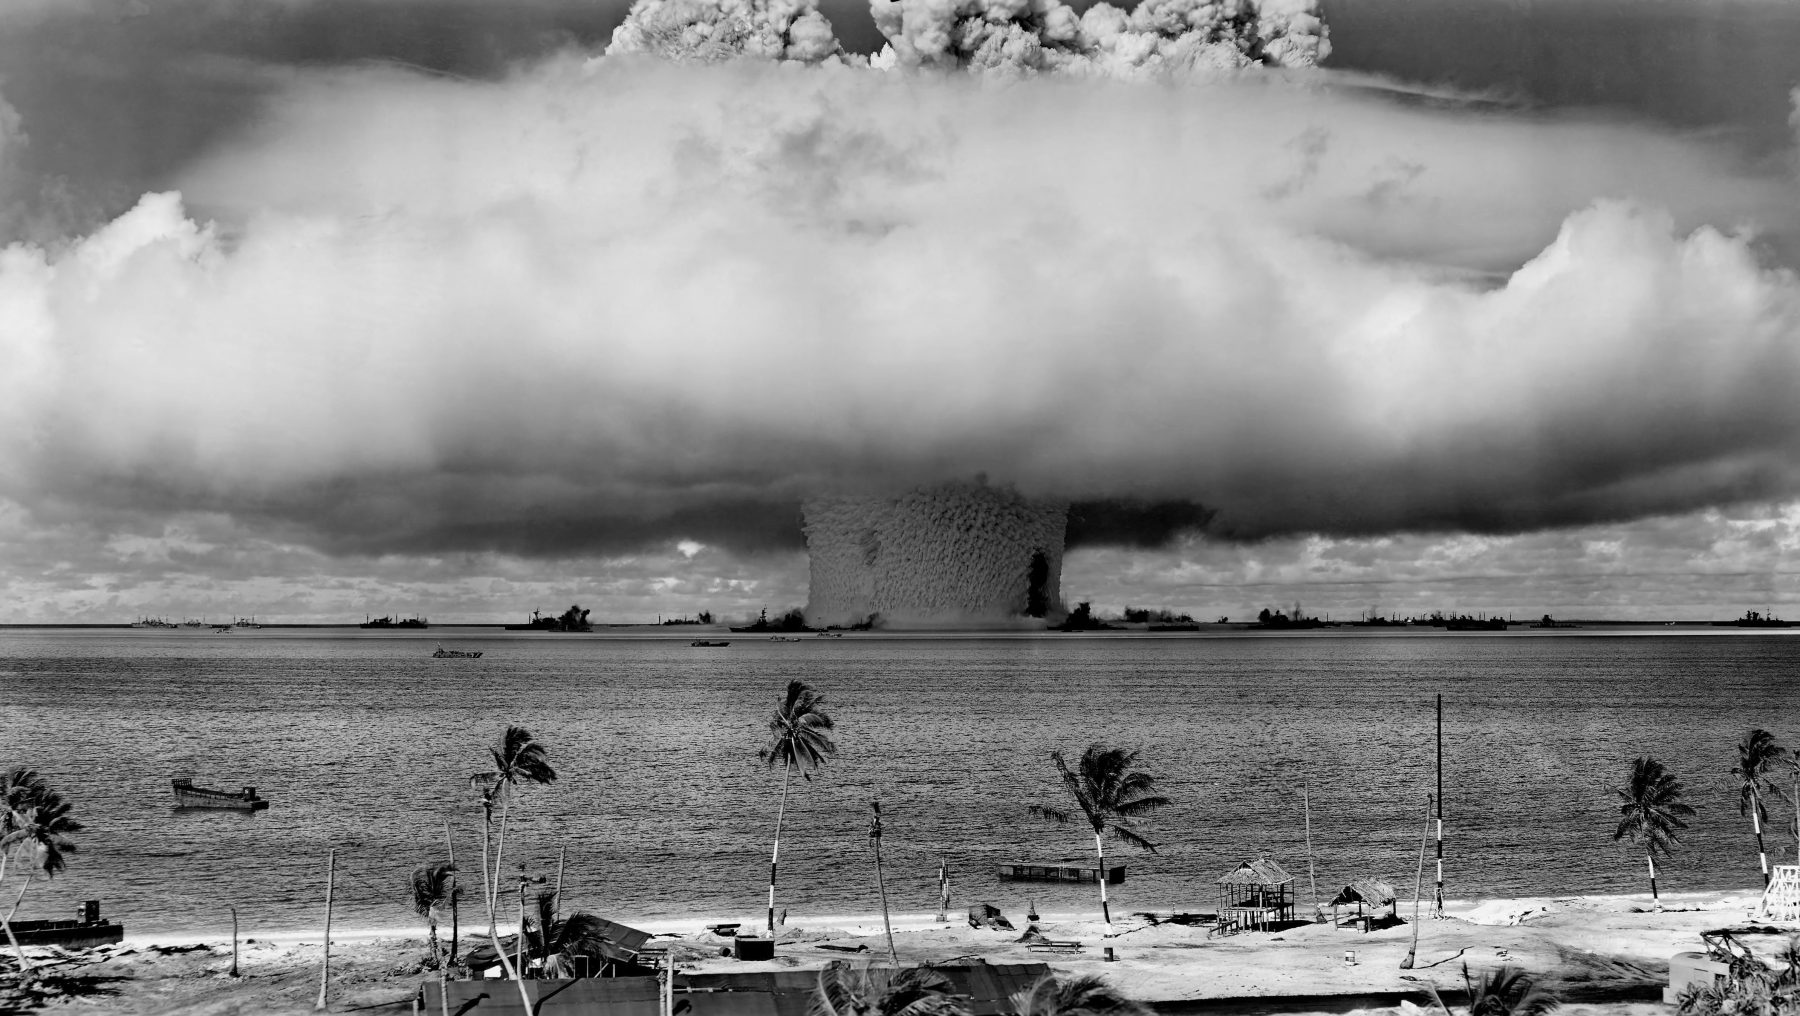 A 21 kiloton underwater nuclear weapons effects test, known as Operation Crossroads  or the Baker Test, conducted at Bikini Atoll in 1946. (United States Department of Defense)